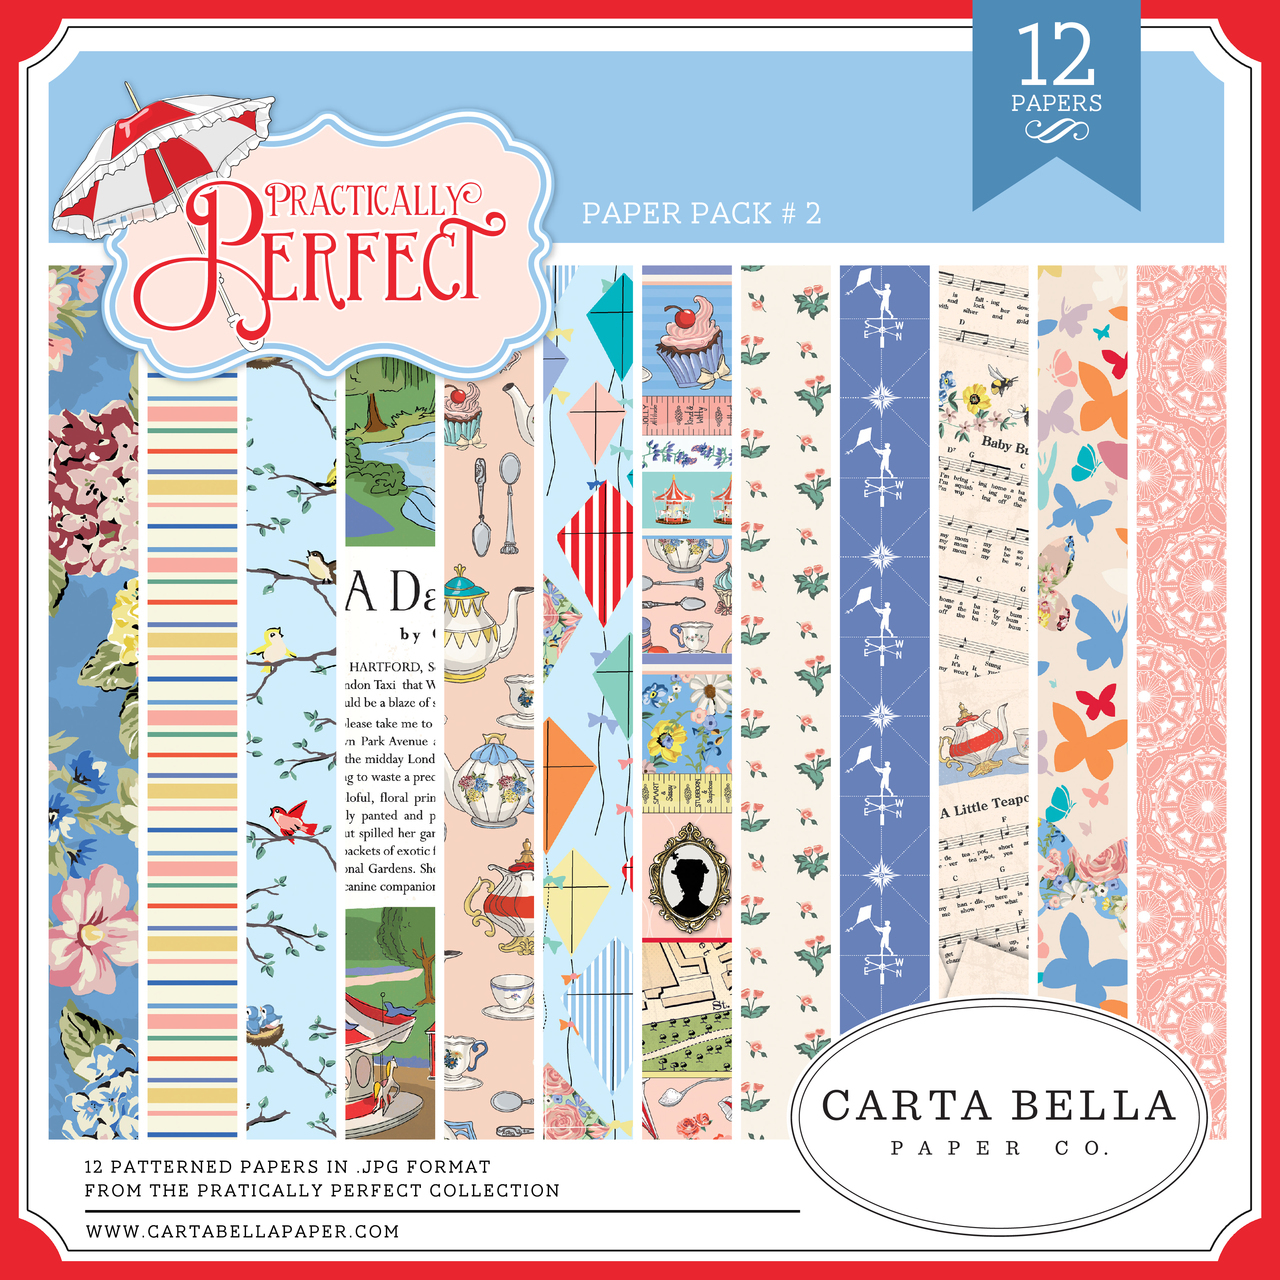 Practically Perfect Paper Pack #2